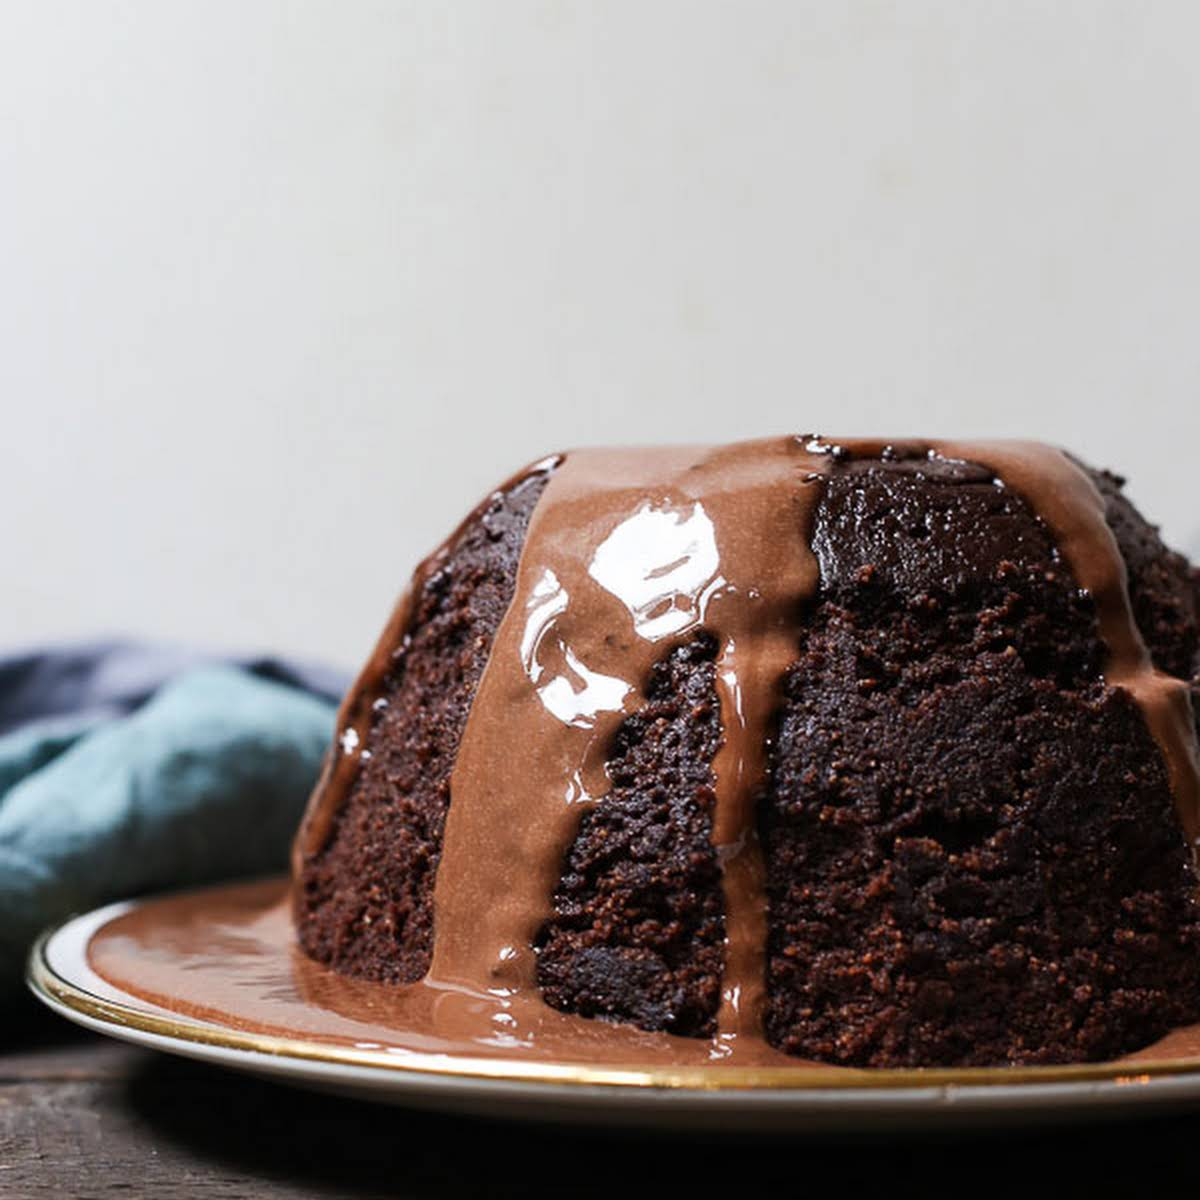 Steamed Chocolate Pudding with Chocolate Custard gluten-free